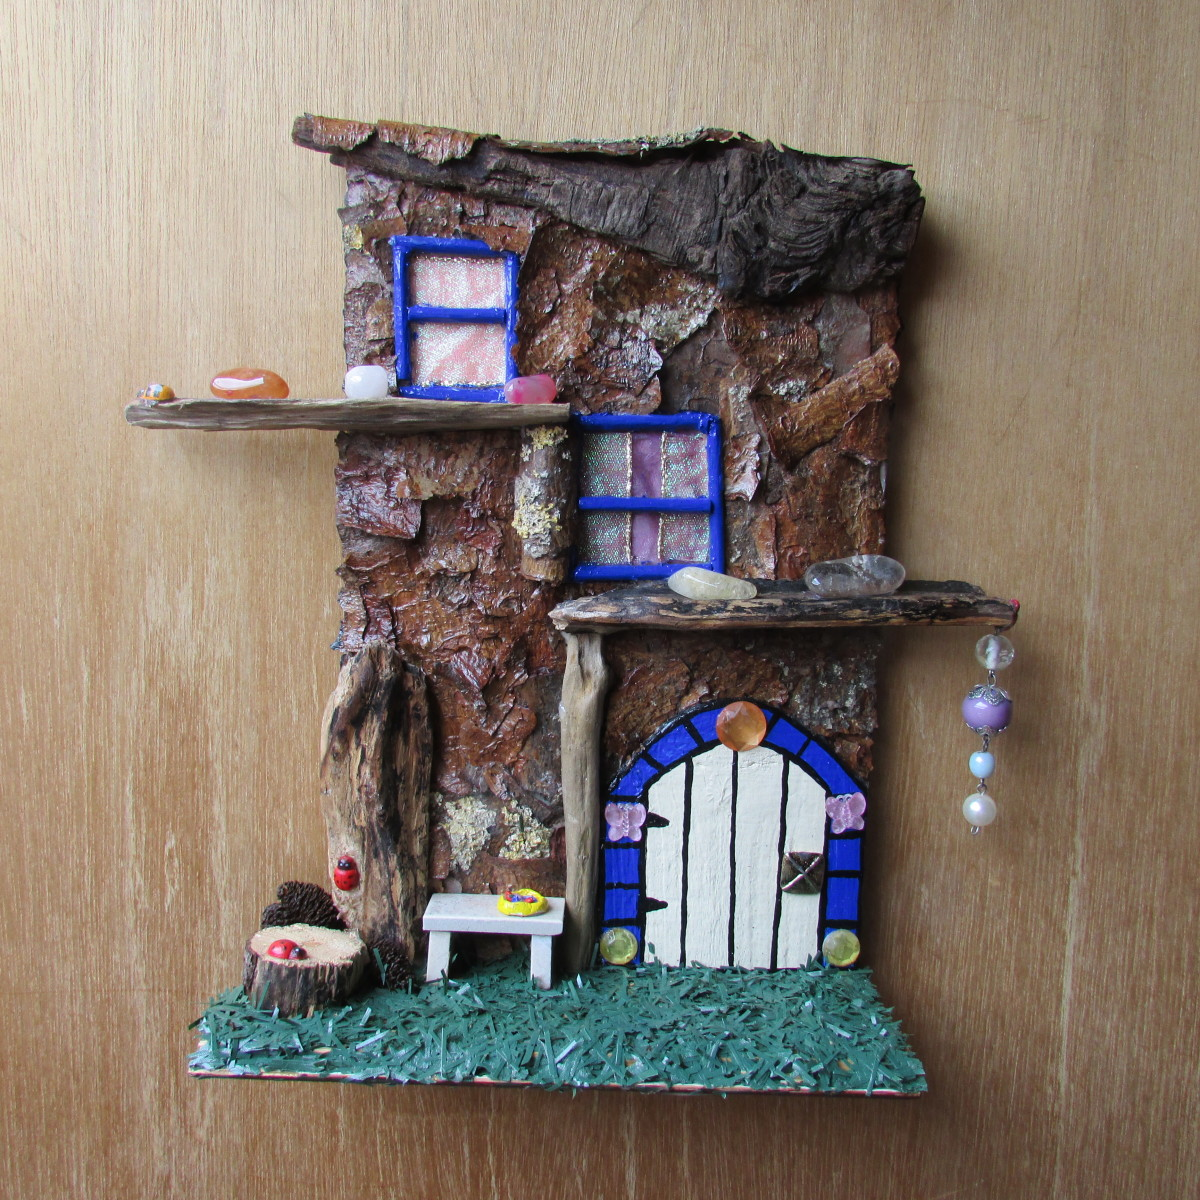 How To Make Fairy House Windows Doors Out Of Wood Feltmagnet: how to make a fairy door out of clay